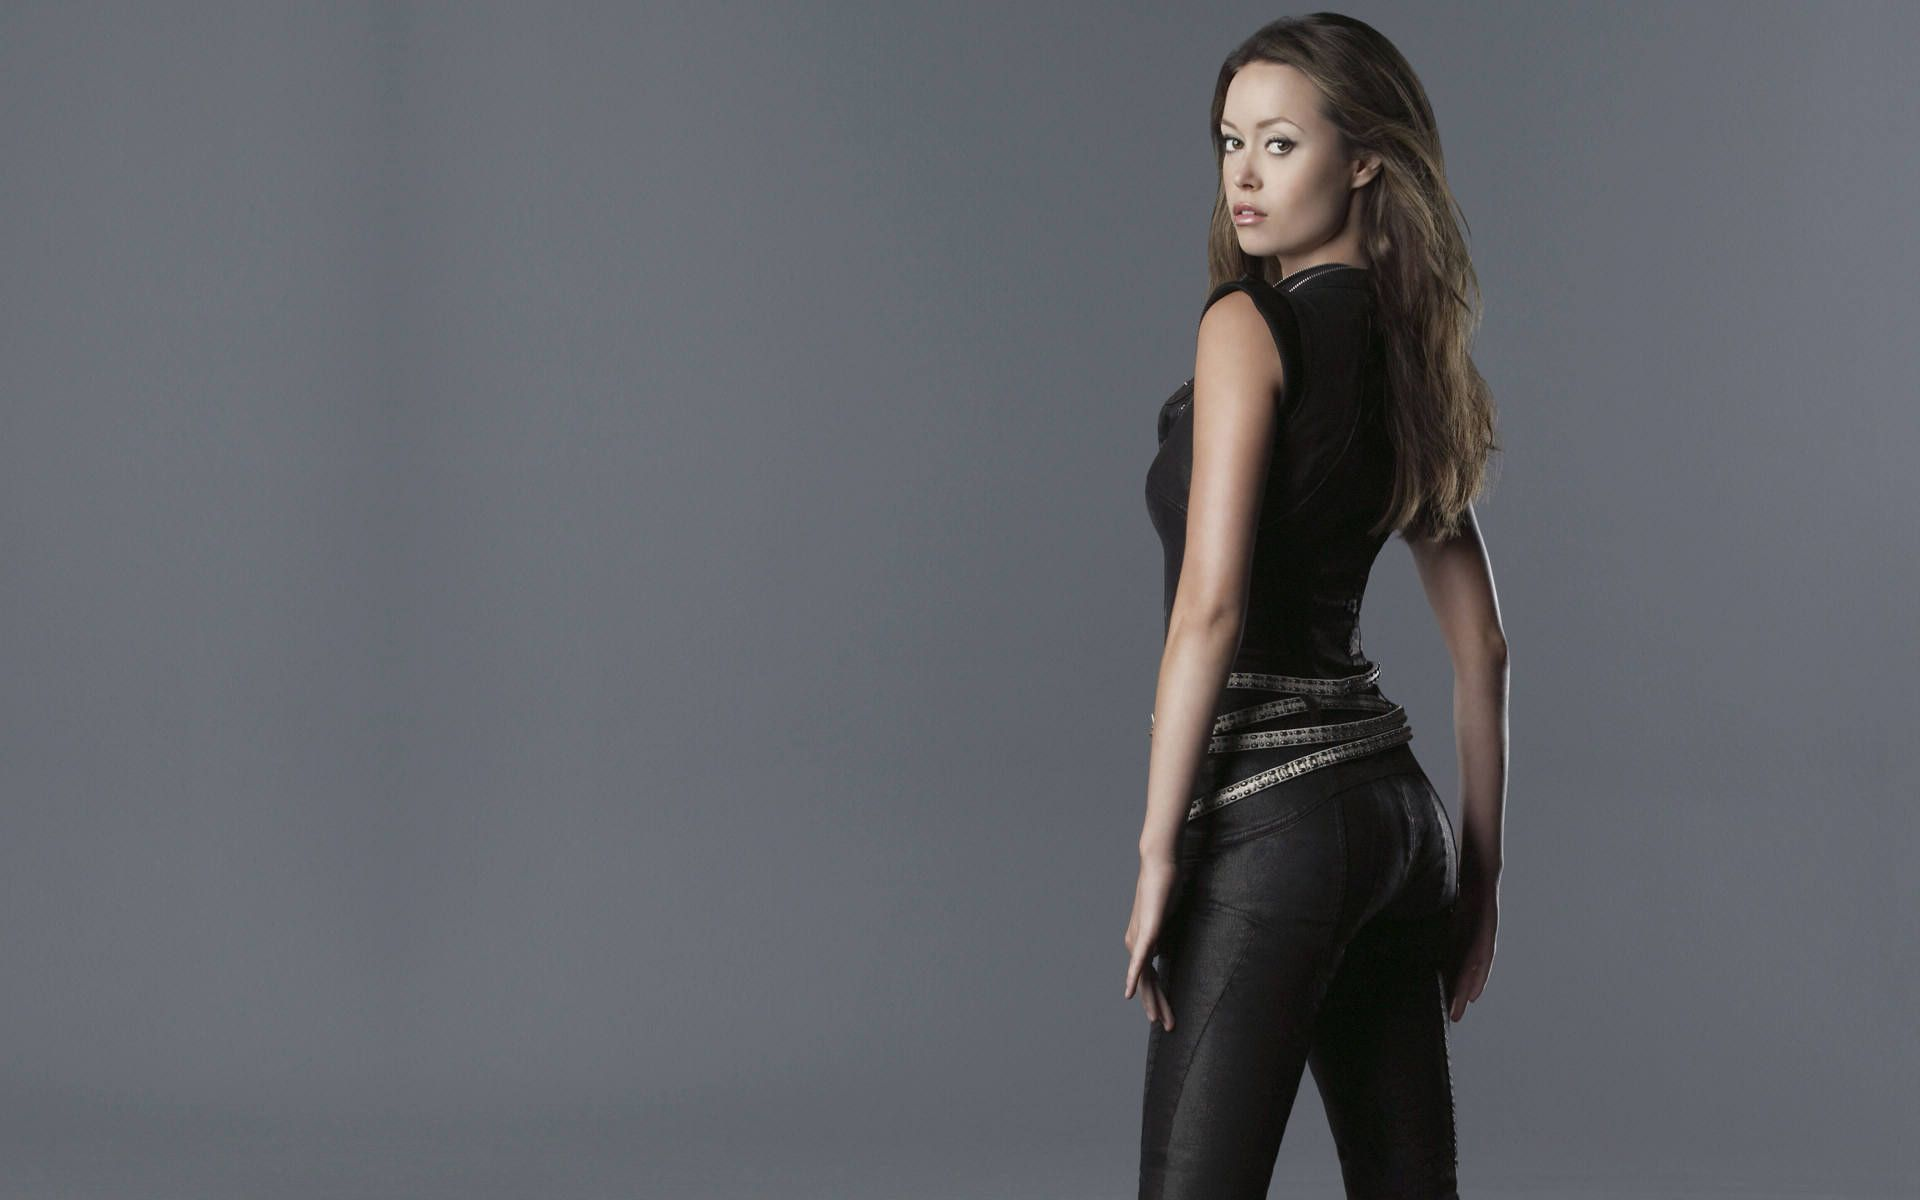 summer glau wallpaper terminator 217 summer glau hd wallpapers and background images download for free on all your devices - computer, smartphone, or tablet.